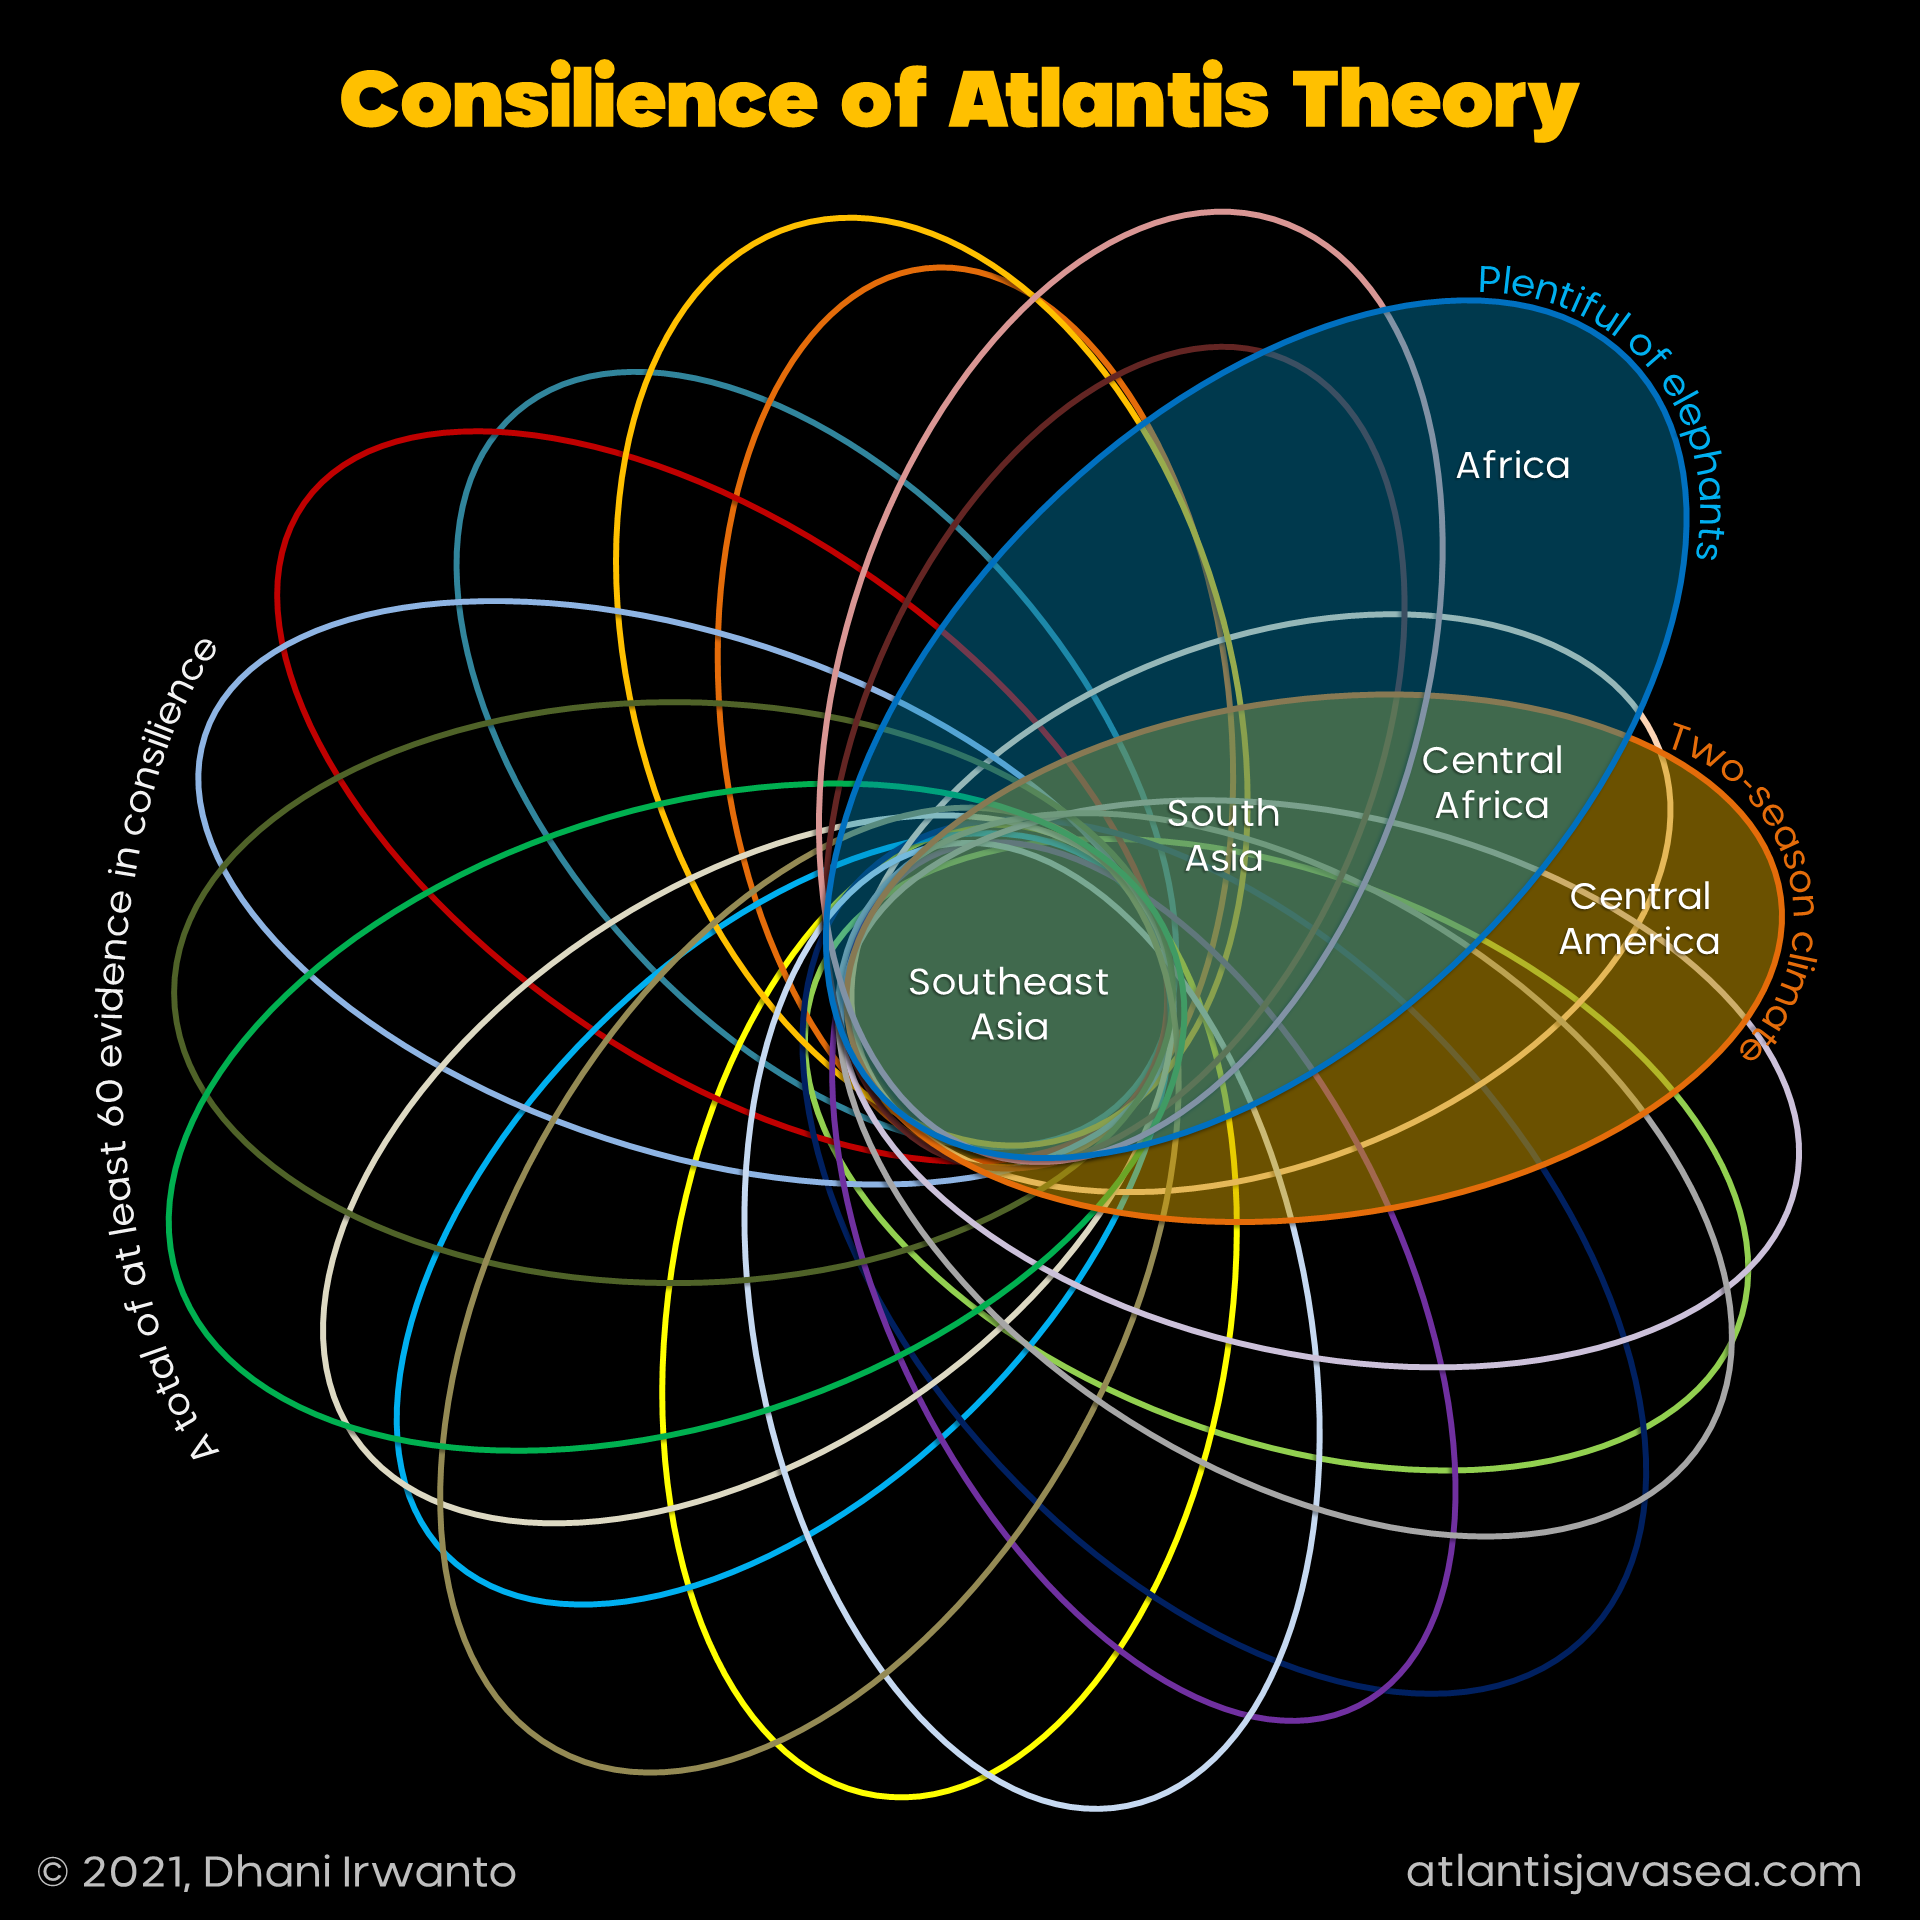 Consilience of Atlantis Theory